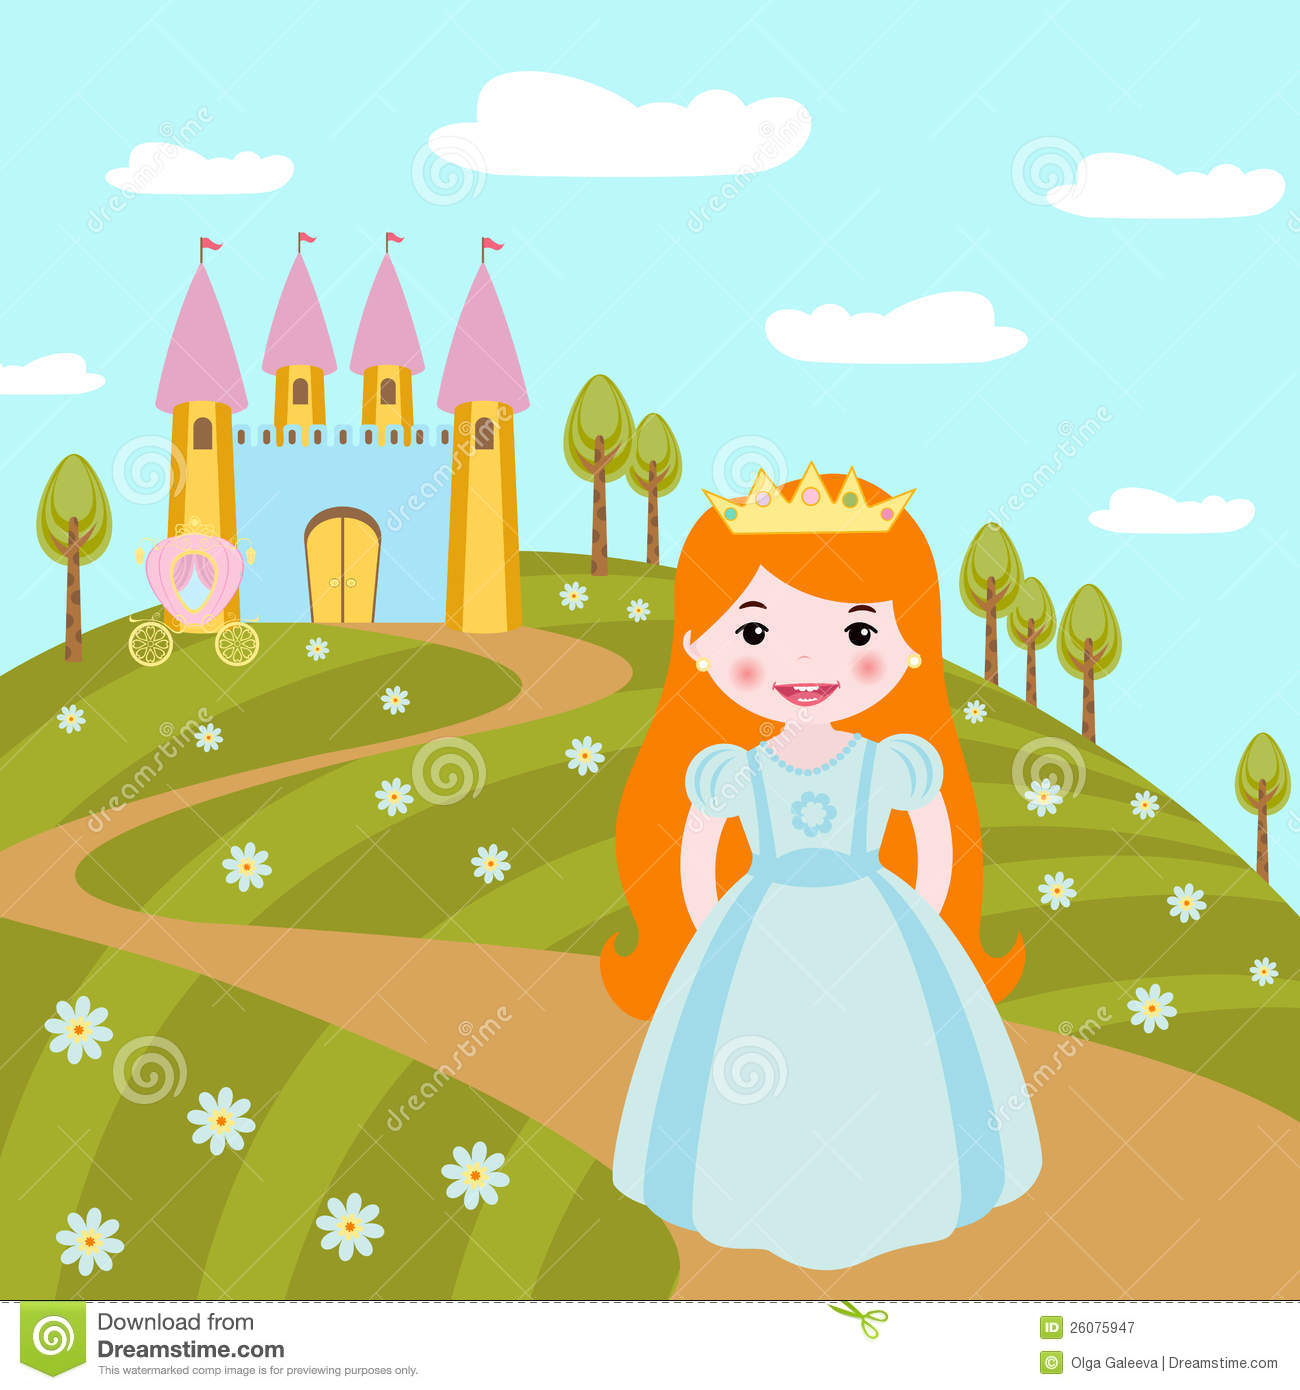 Cute Paper Wallpaper Cute Little Princess Royalty Free Stock Photography